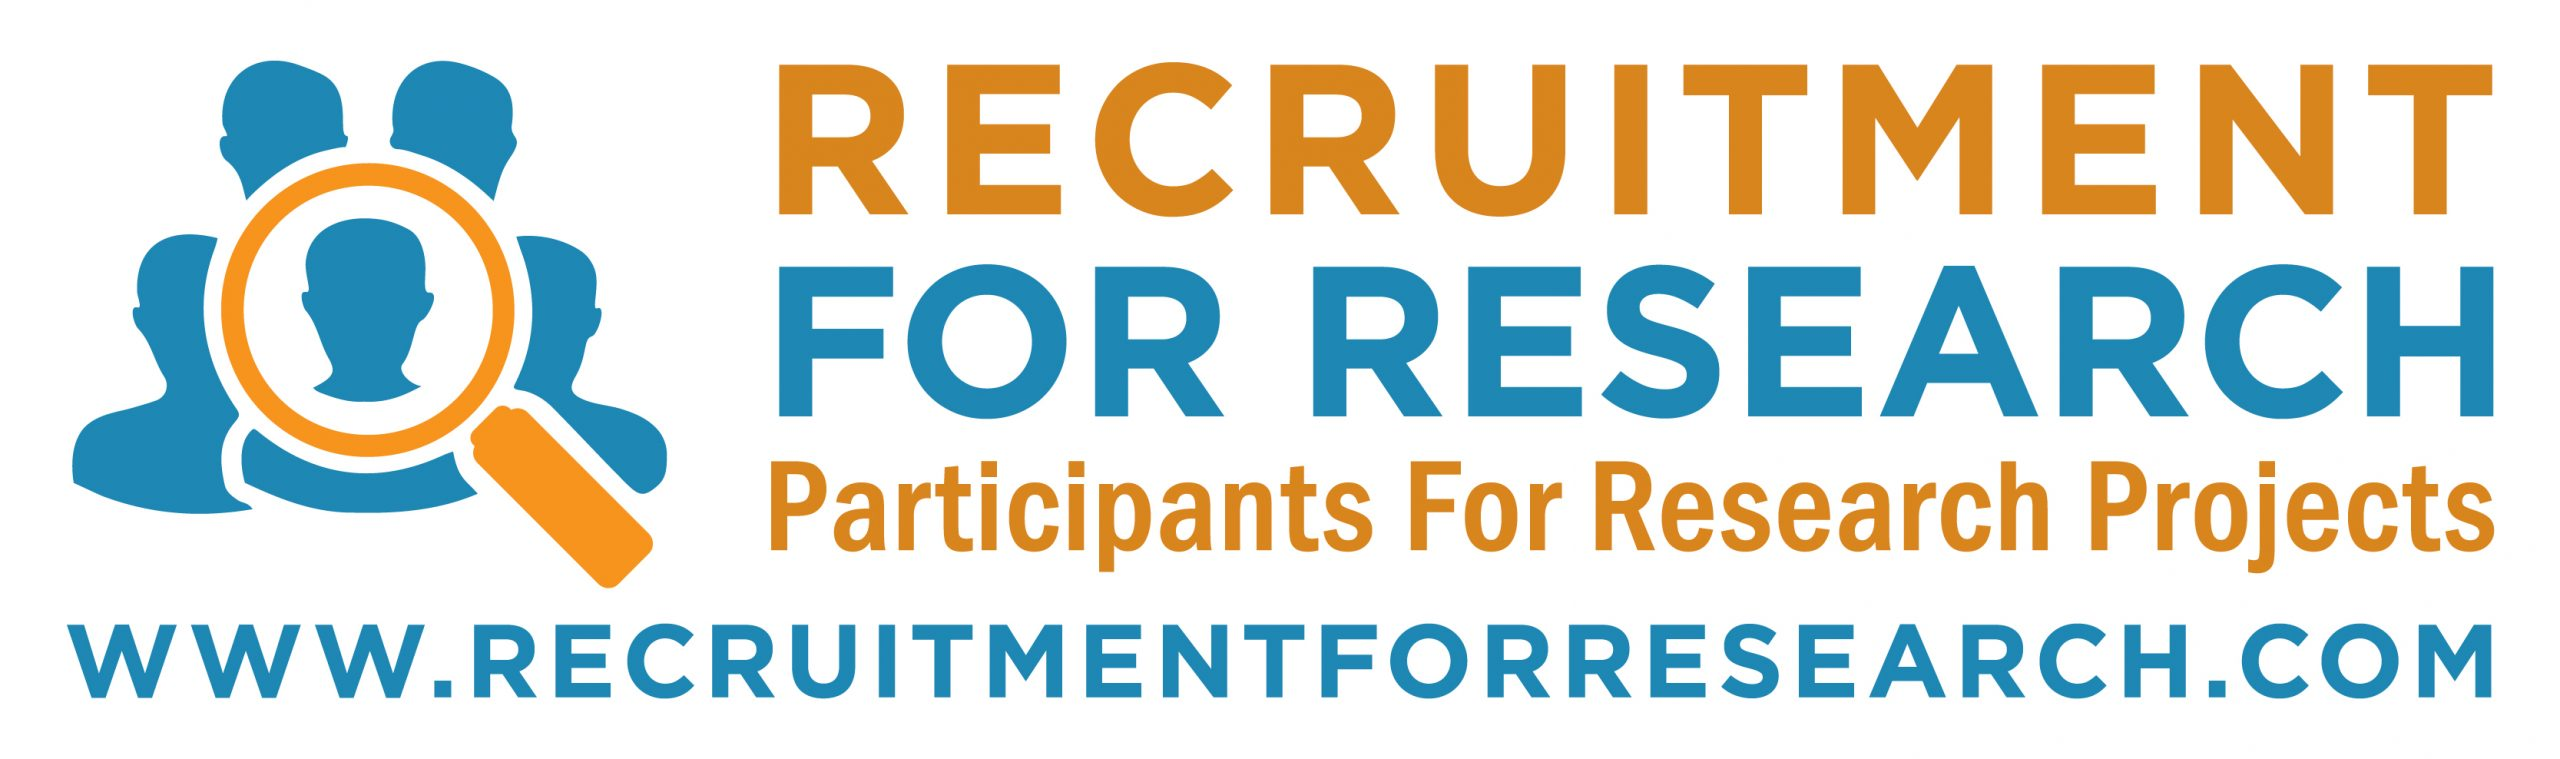 Recruitment For Research